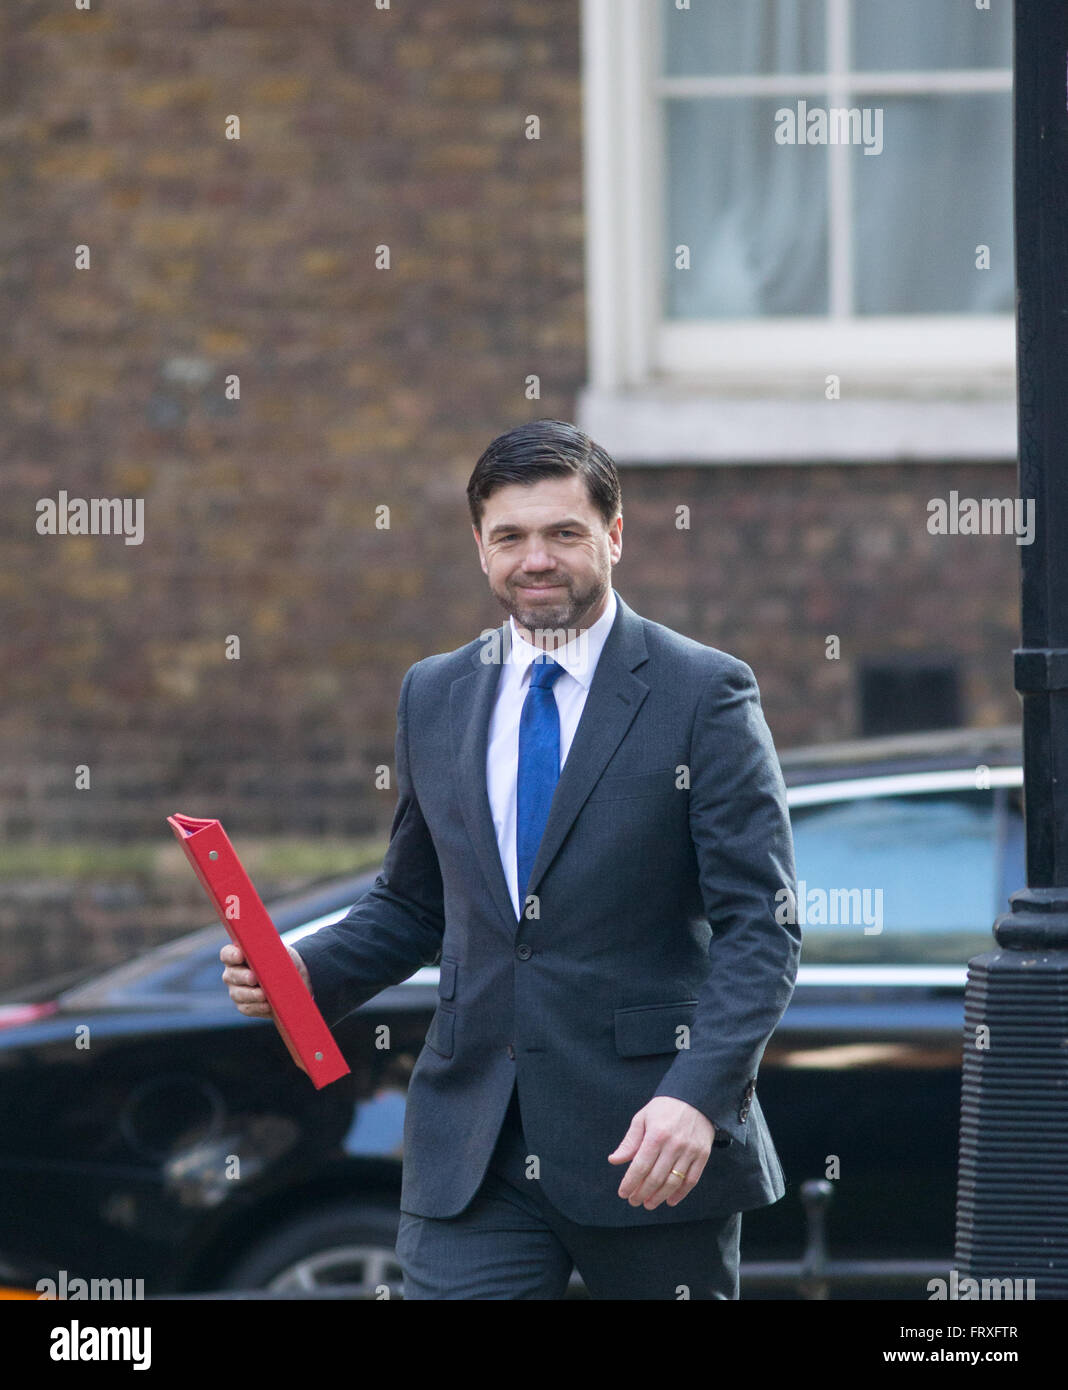 Work and pensions secretary,Stephen Crabb,arrives at number 10 Downing Street.He has replaced Iain Duncan Smith - Stock Image